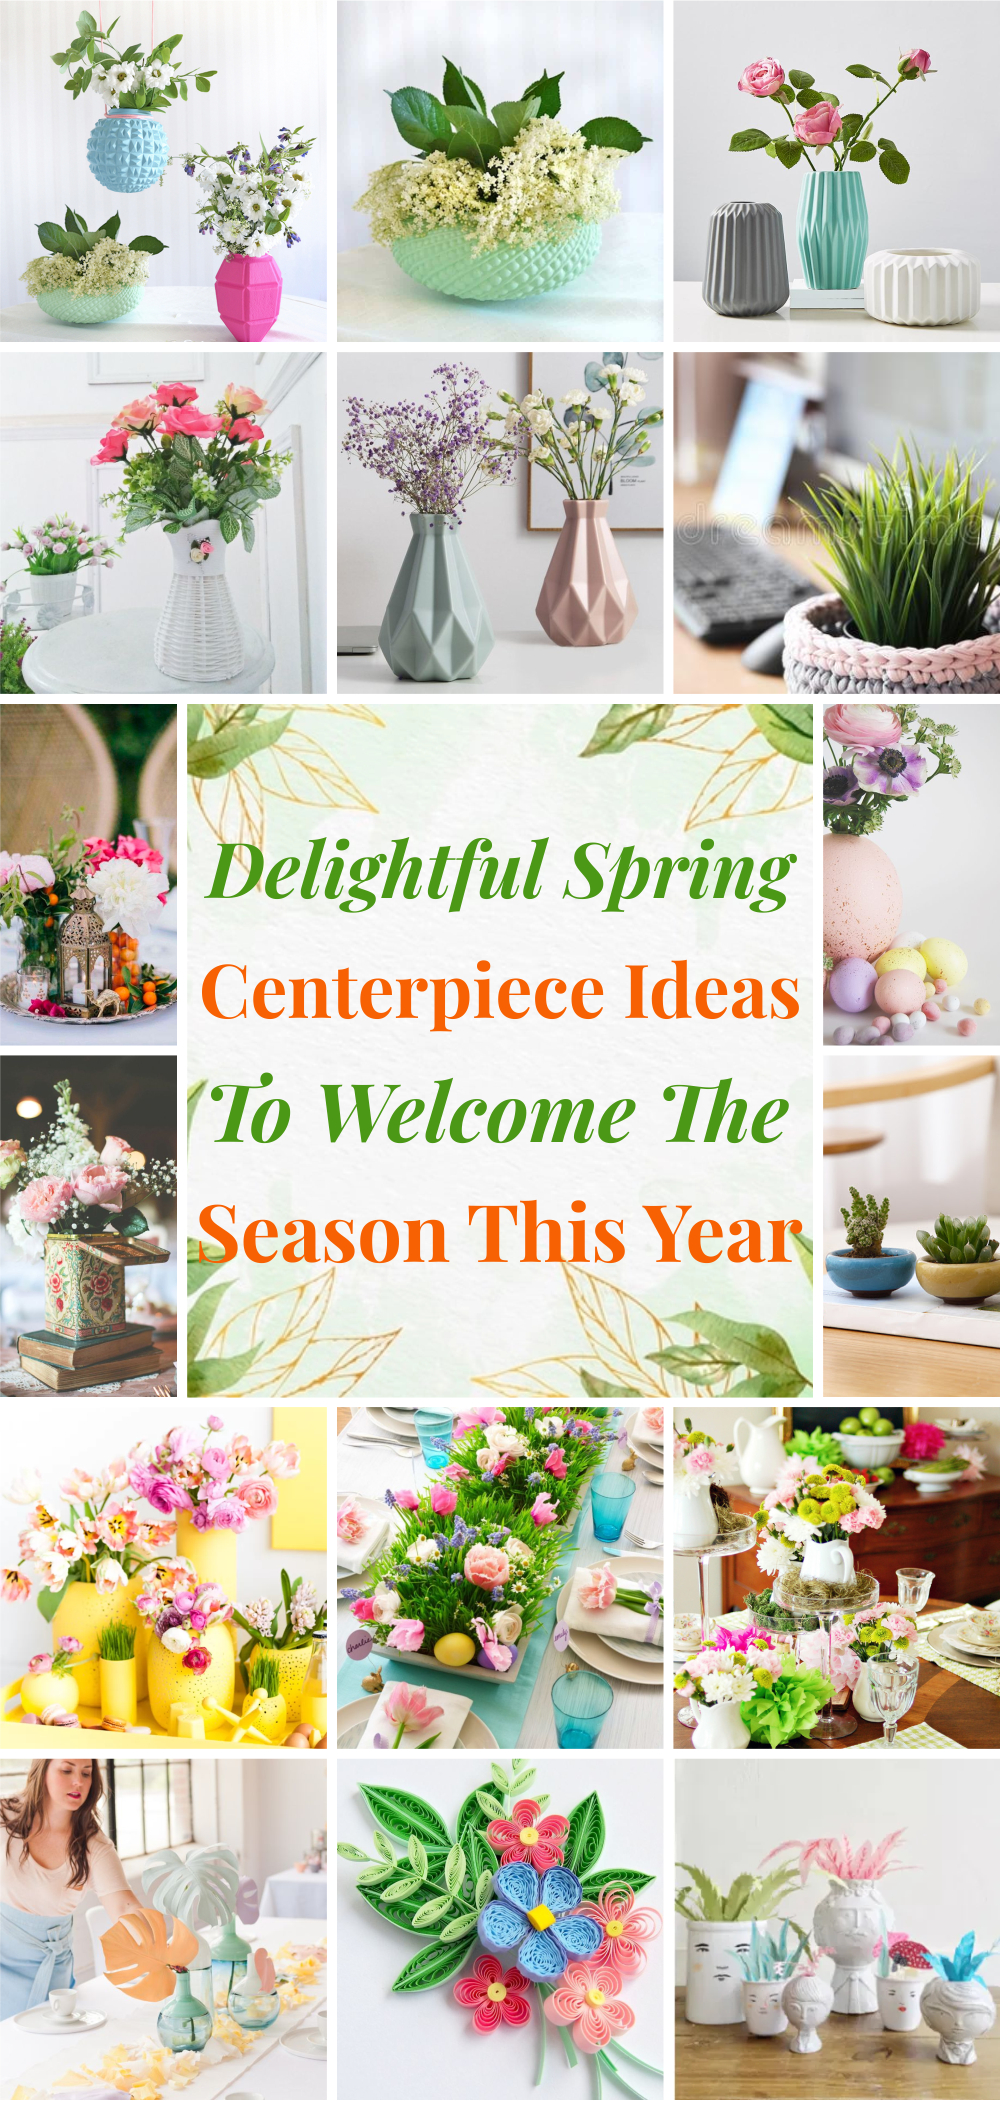 Delightful spring centerpiece ideas to welcome the season this year 1